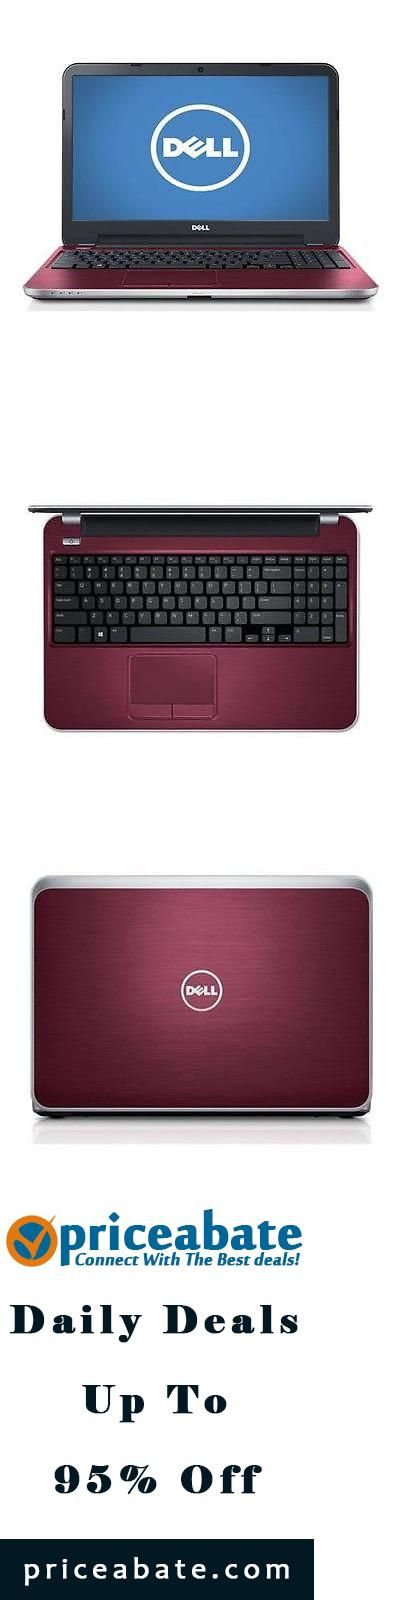 "#priceabatedeals Dell Inspiron M531R 15.6"" HD Notebook, 8GB RAM, 1TB HDD, Fire Red #I5535-1463FIR - Buy This Item Now For Only: $499.99"